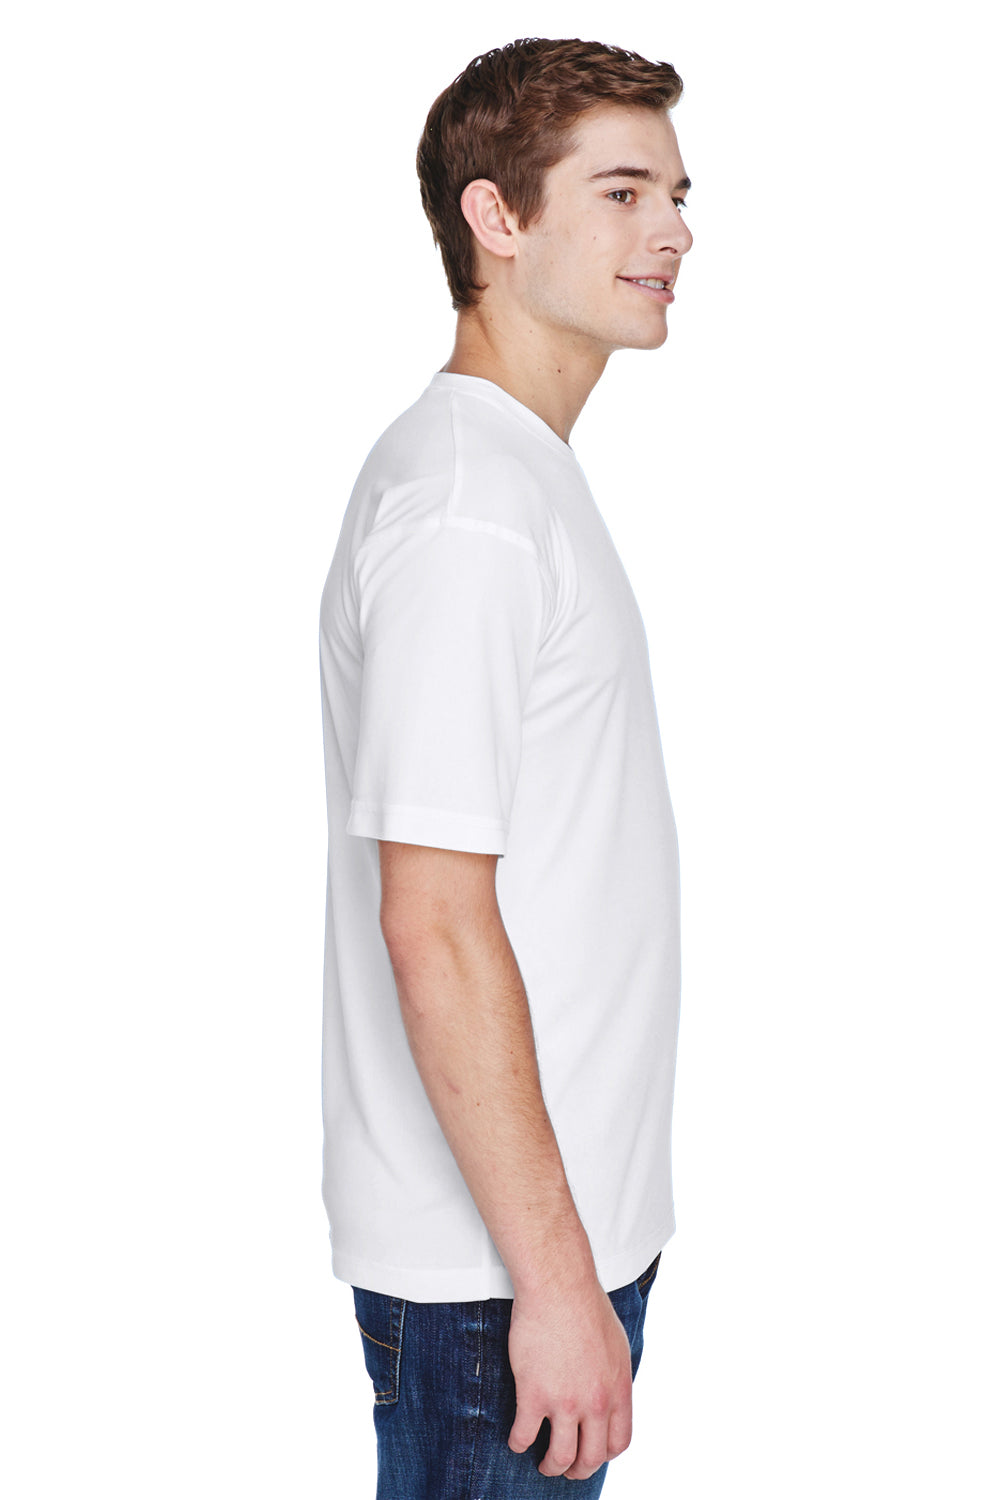 UltraClub 8620 Mens Cool & Dry Performance Moisture Wicking Short Sleeve Crewneck T-Shirt White Side